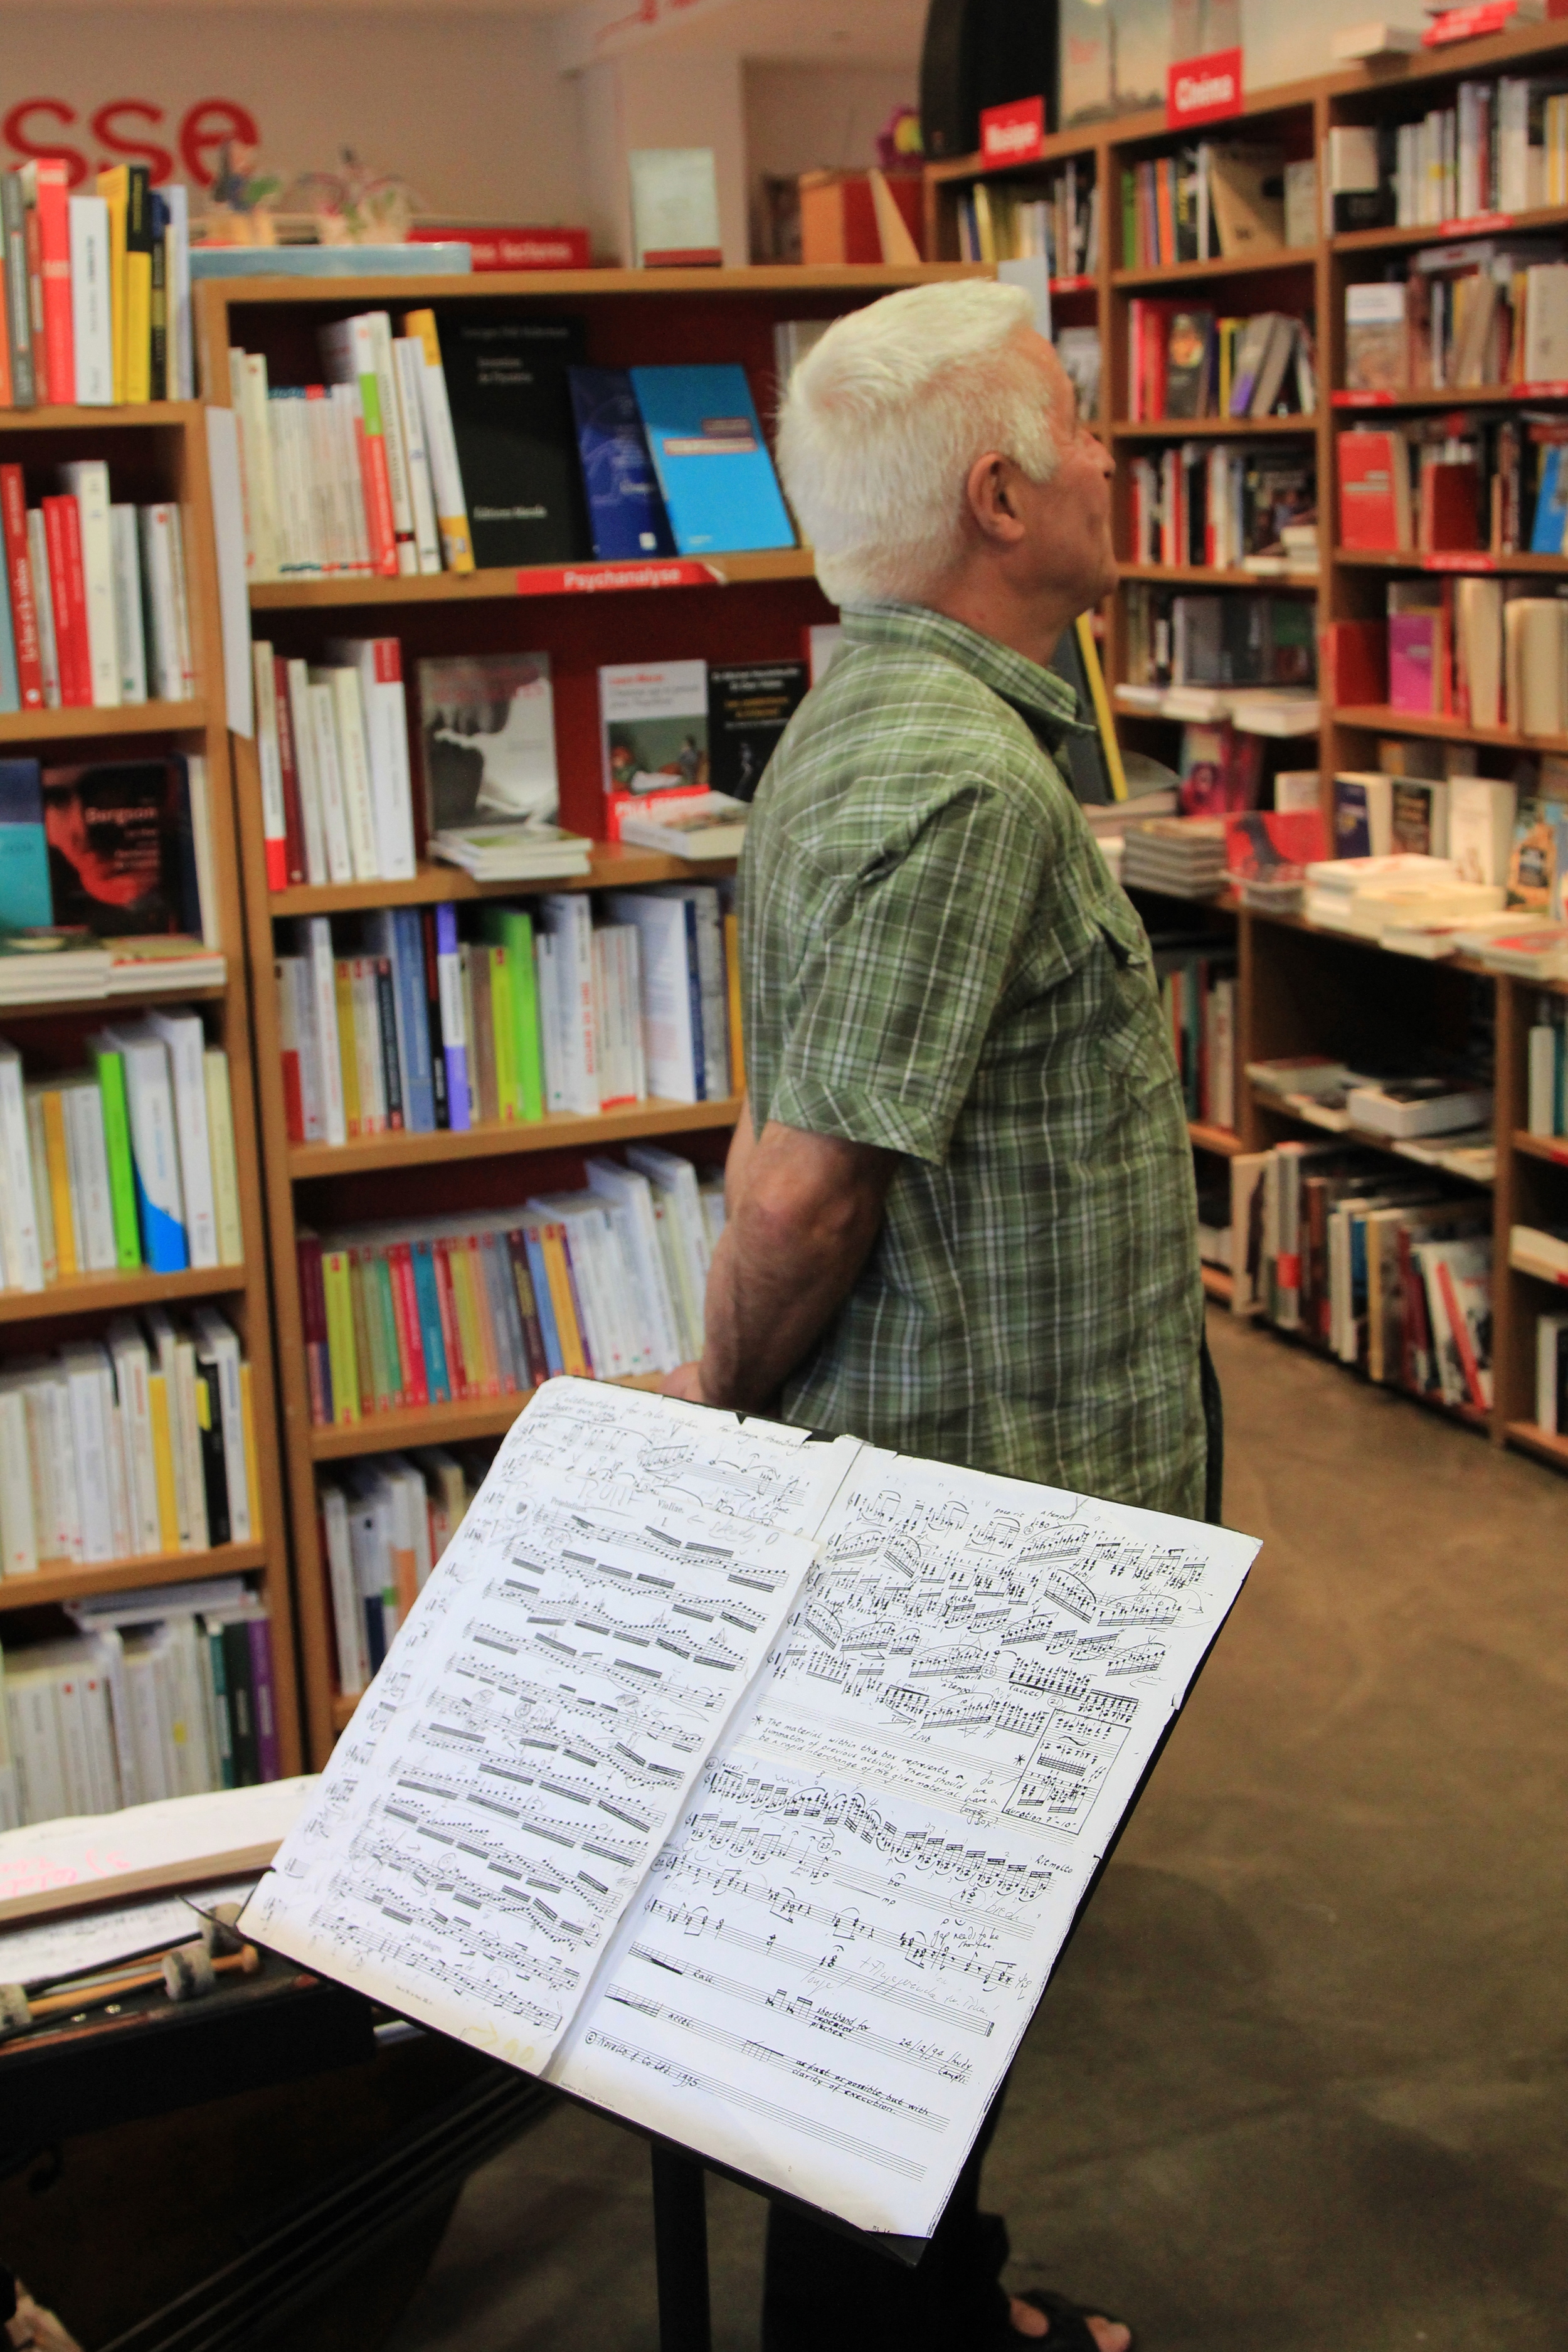 Barry Guy surveys the shelves at Le comptoir des mots prior to his performance with Maya Homburger. Photo: Dan Gunn.